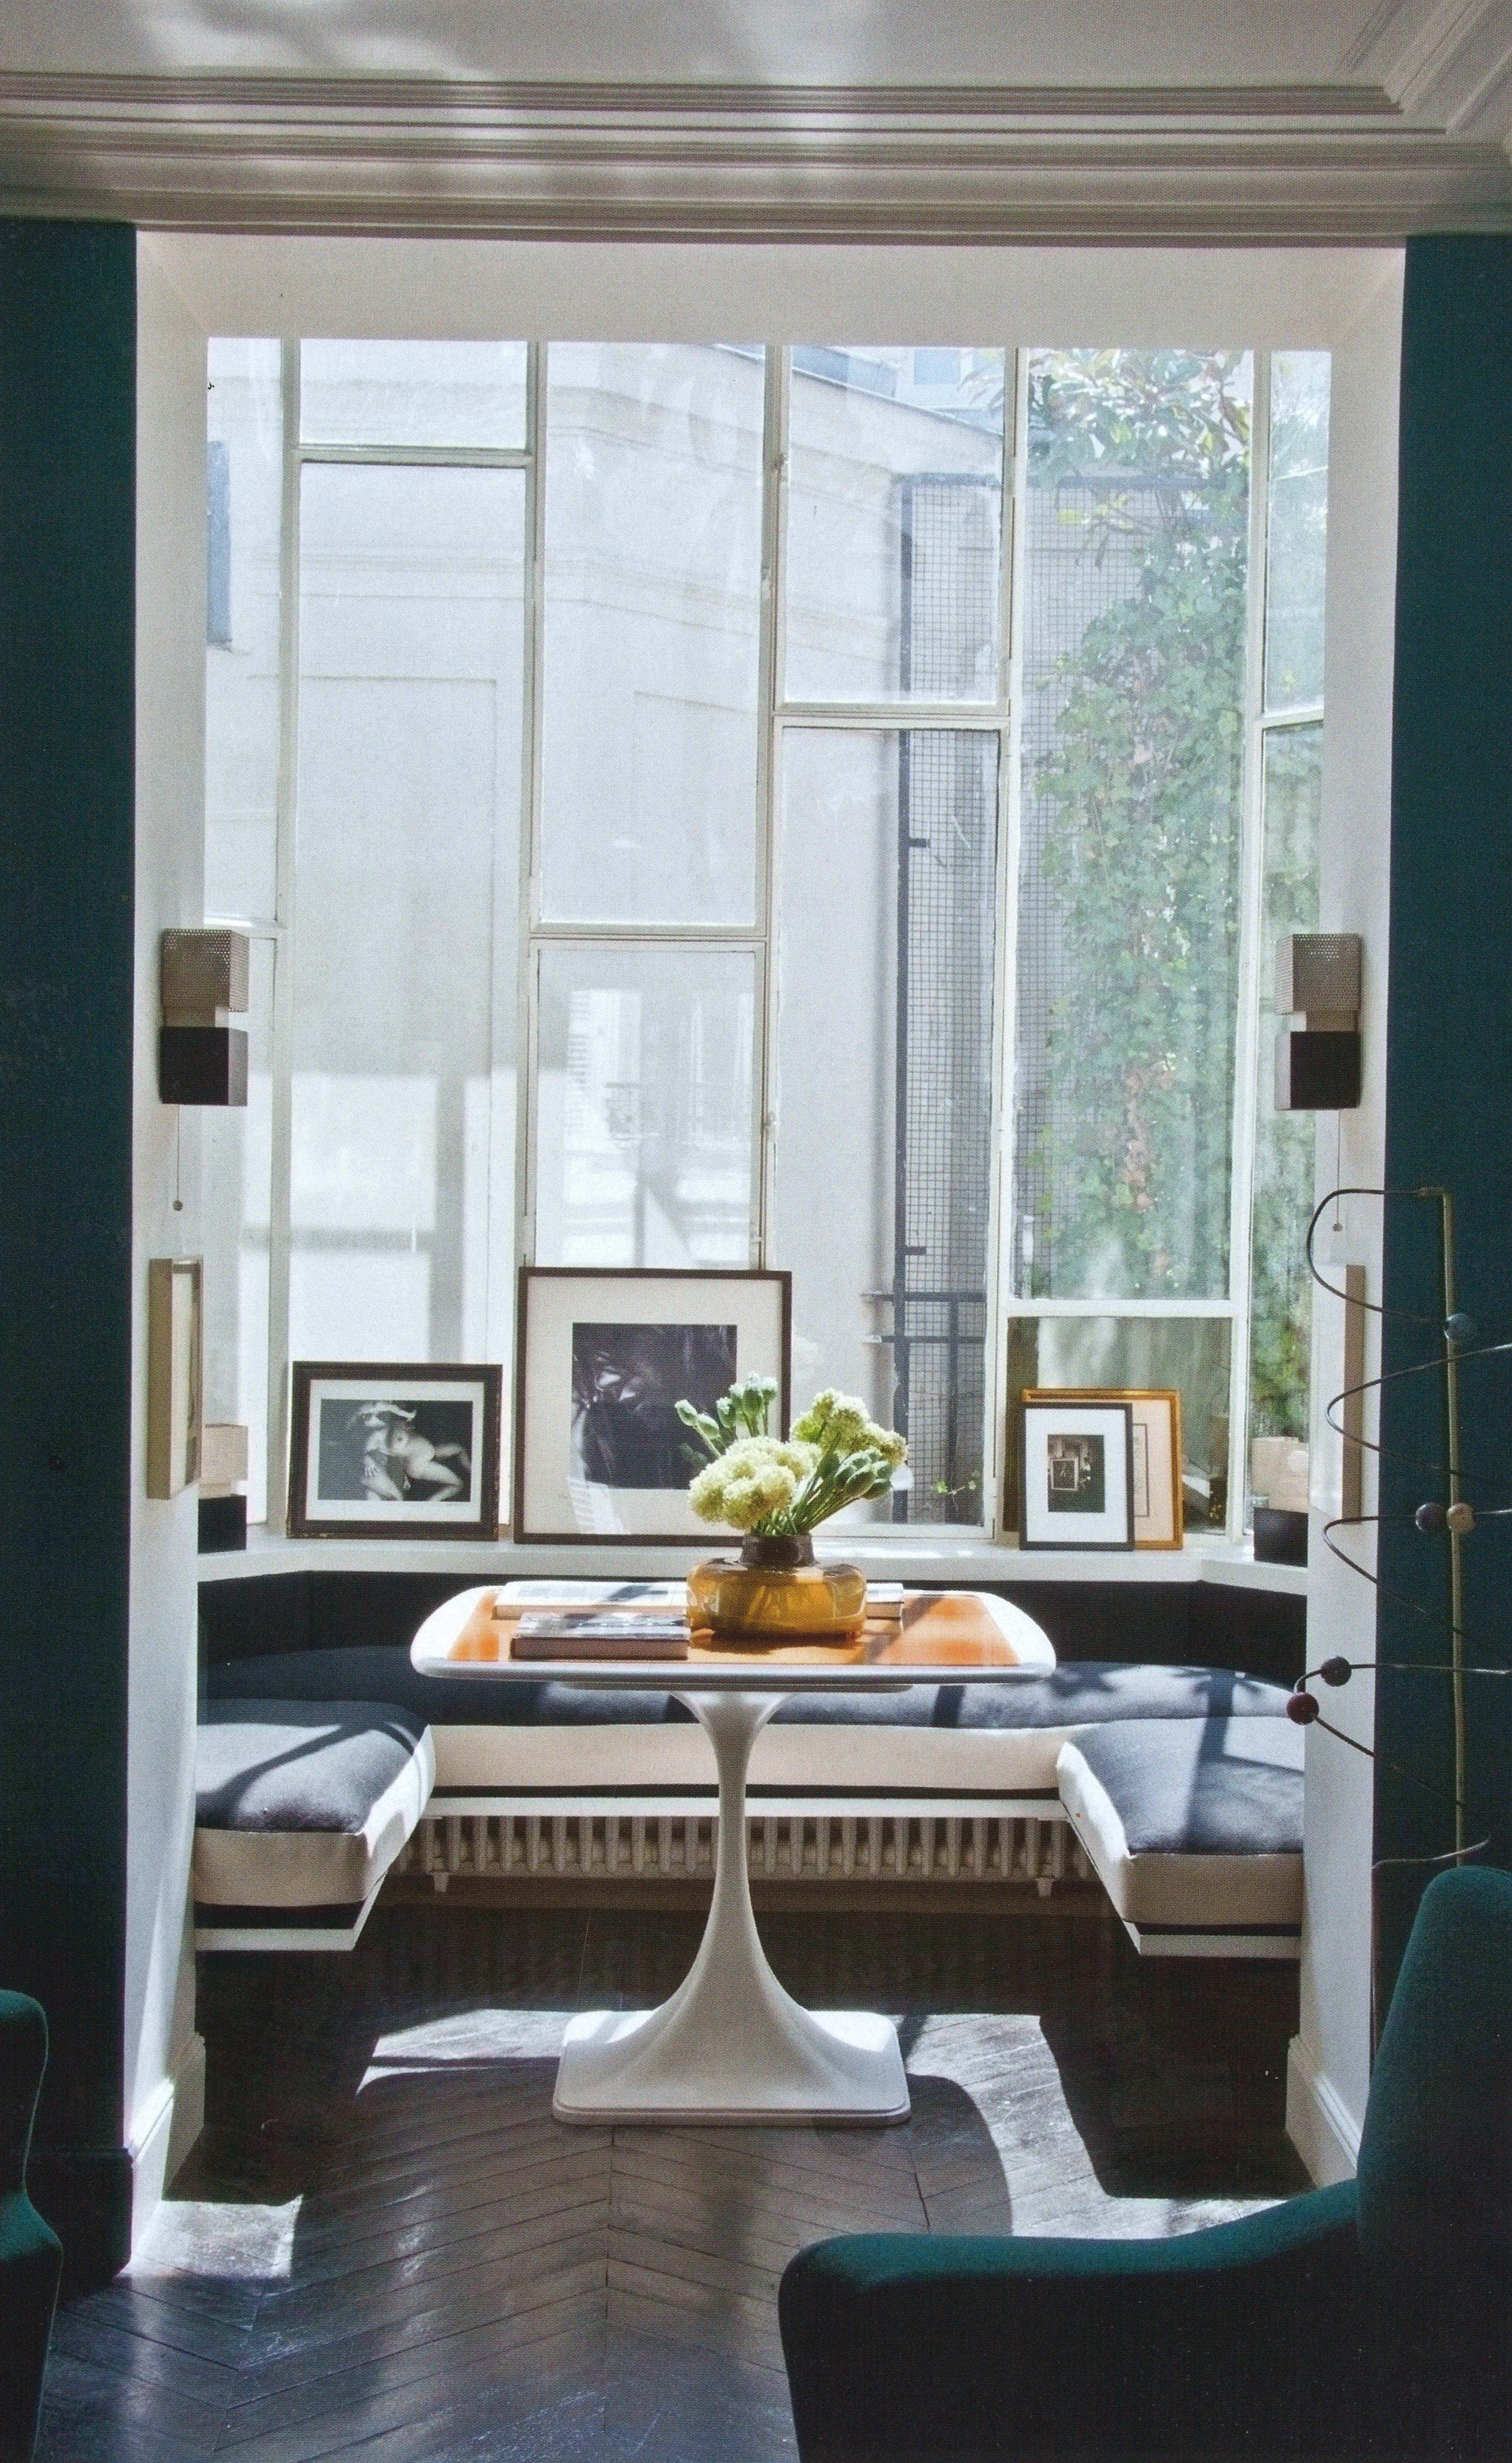 Kitchen window without sill  leaned art on window sill  casa detalles y espacios  pinterest